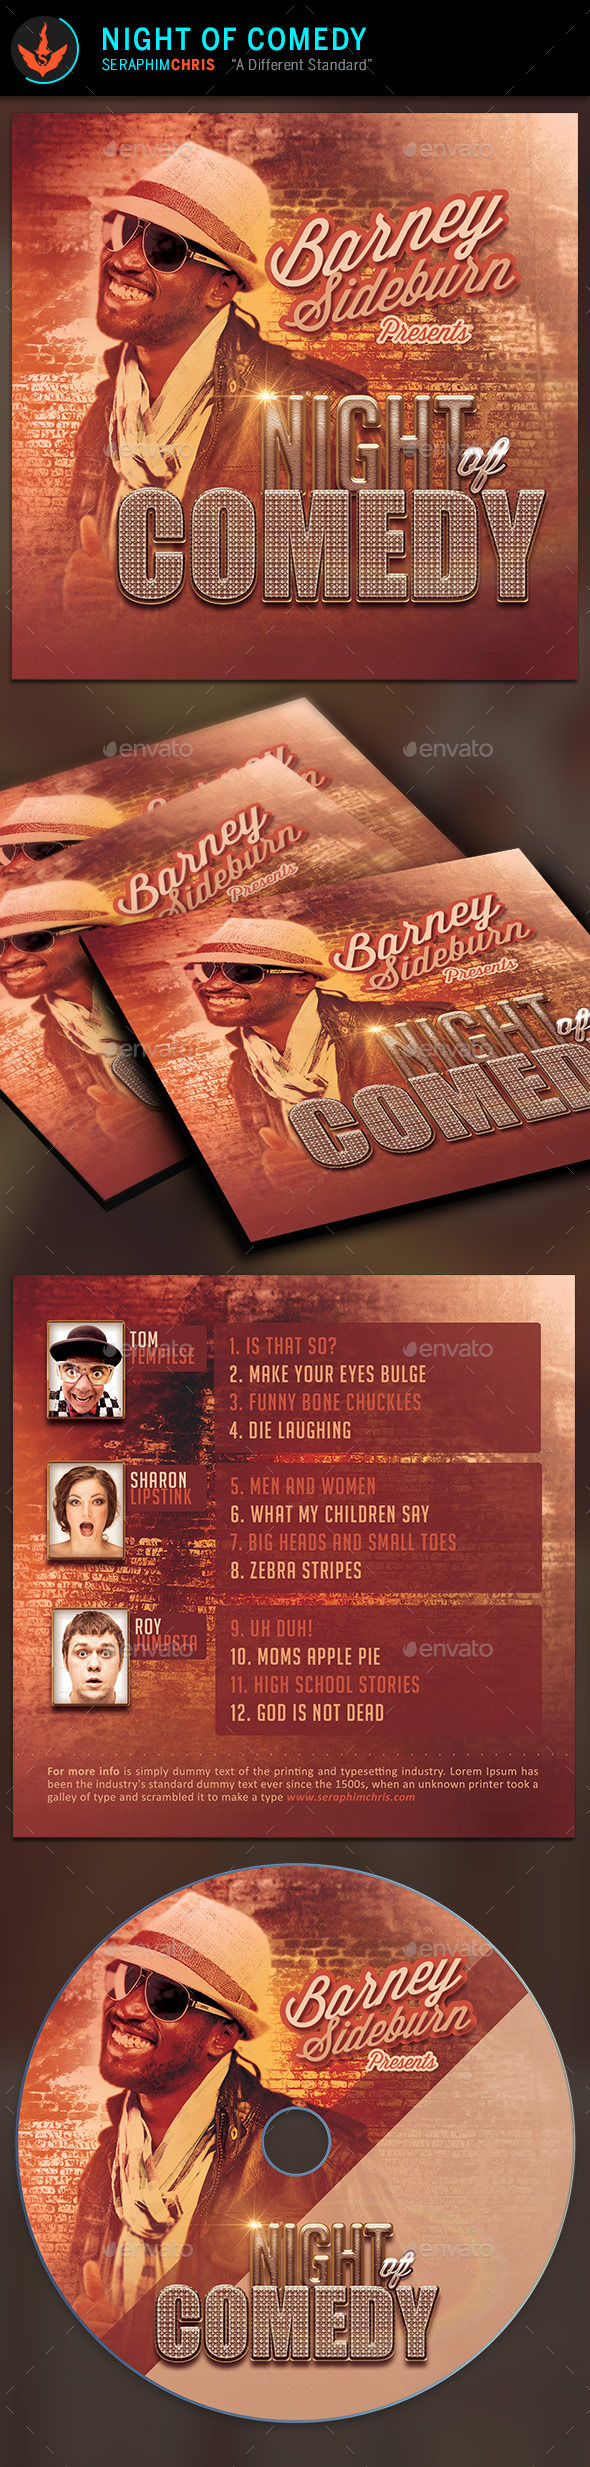 GraphicRiver Night of Comedy CD Artwork Template 9299951